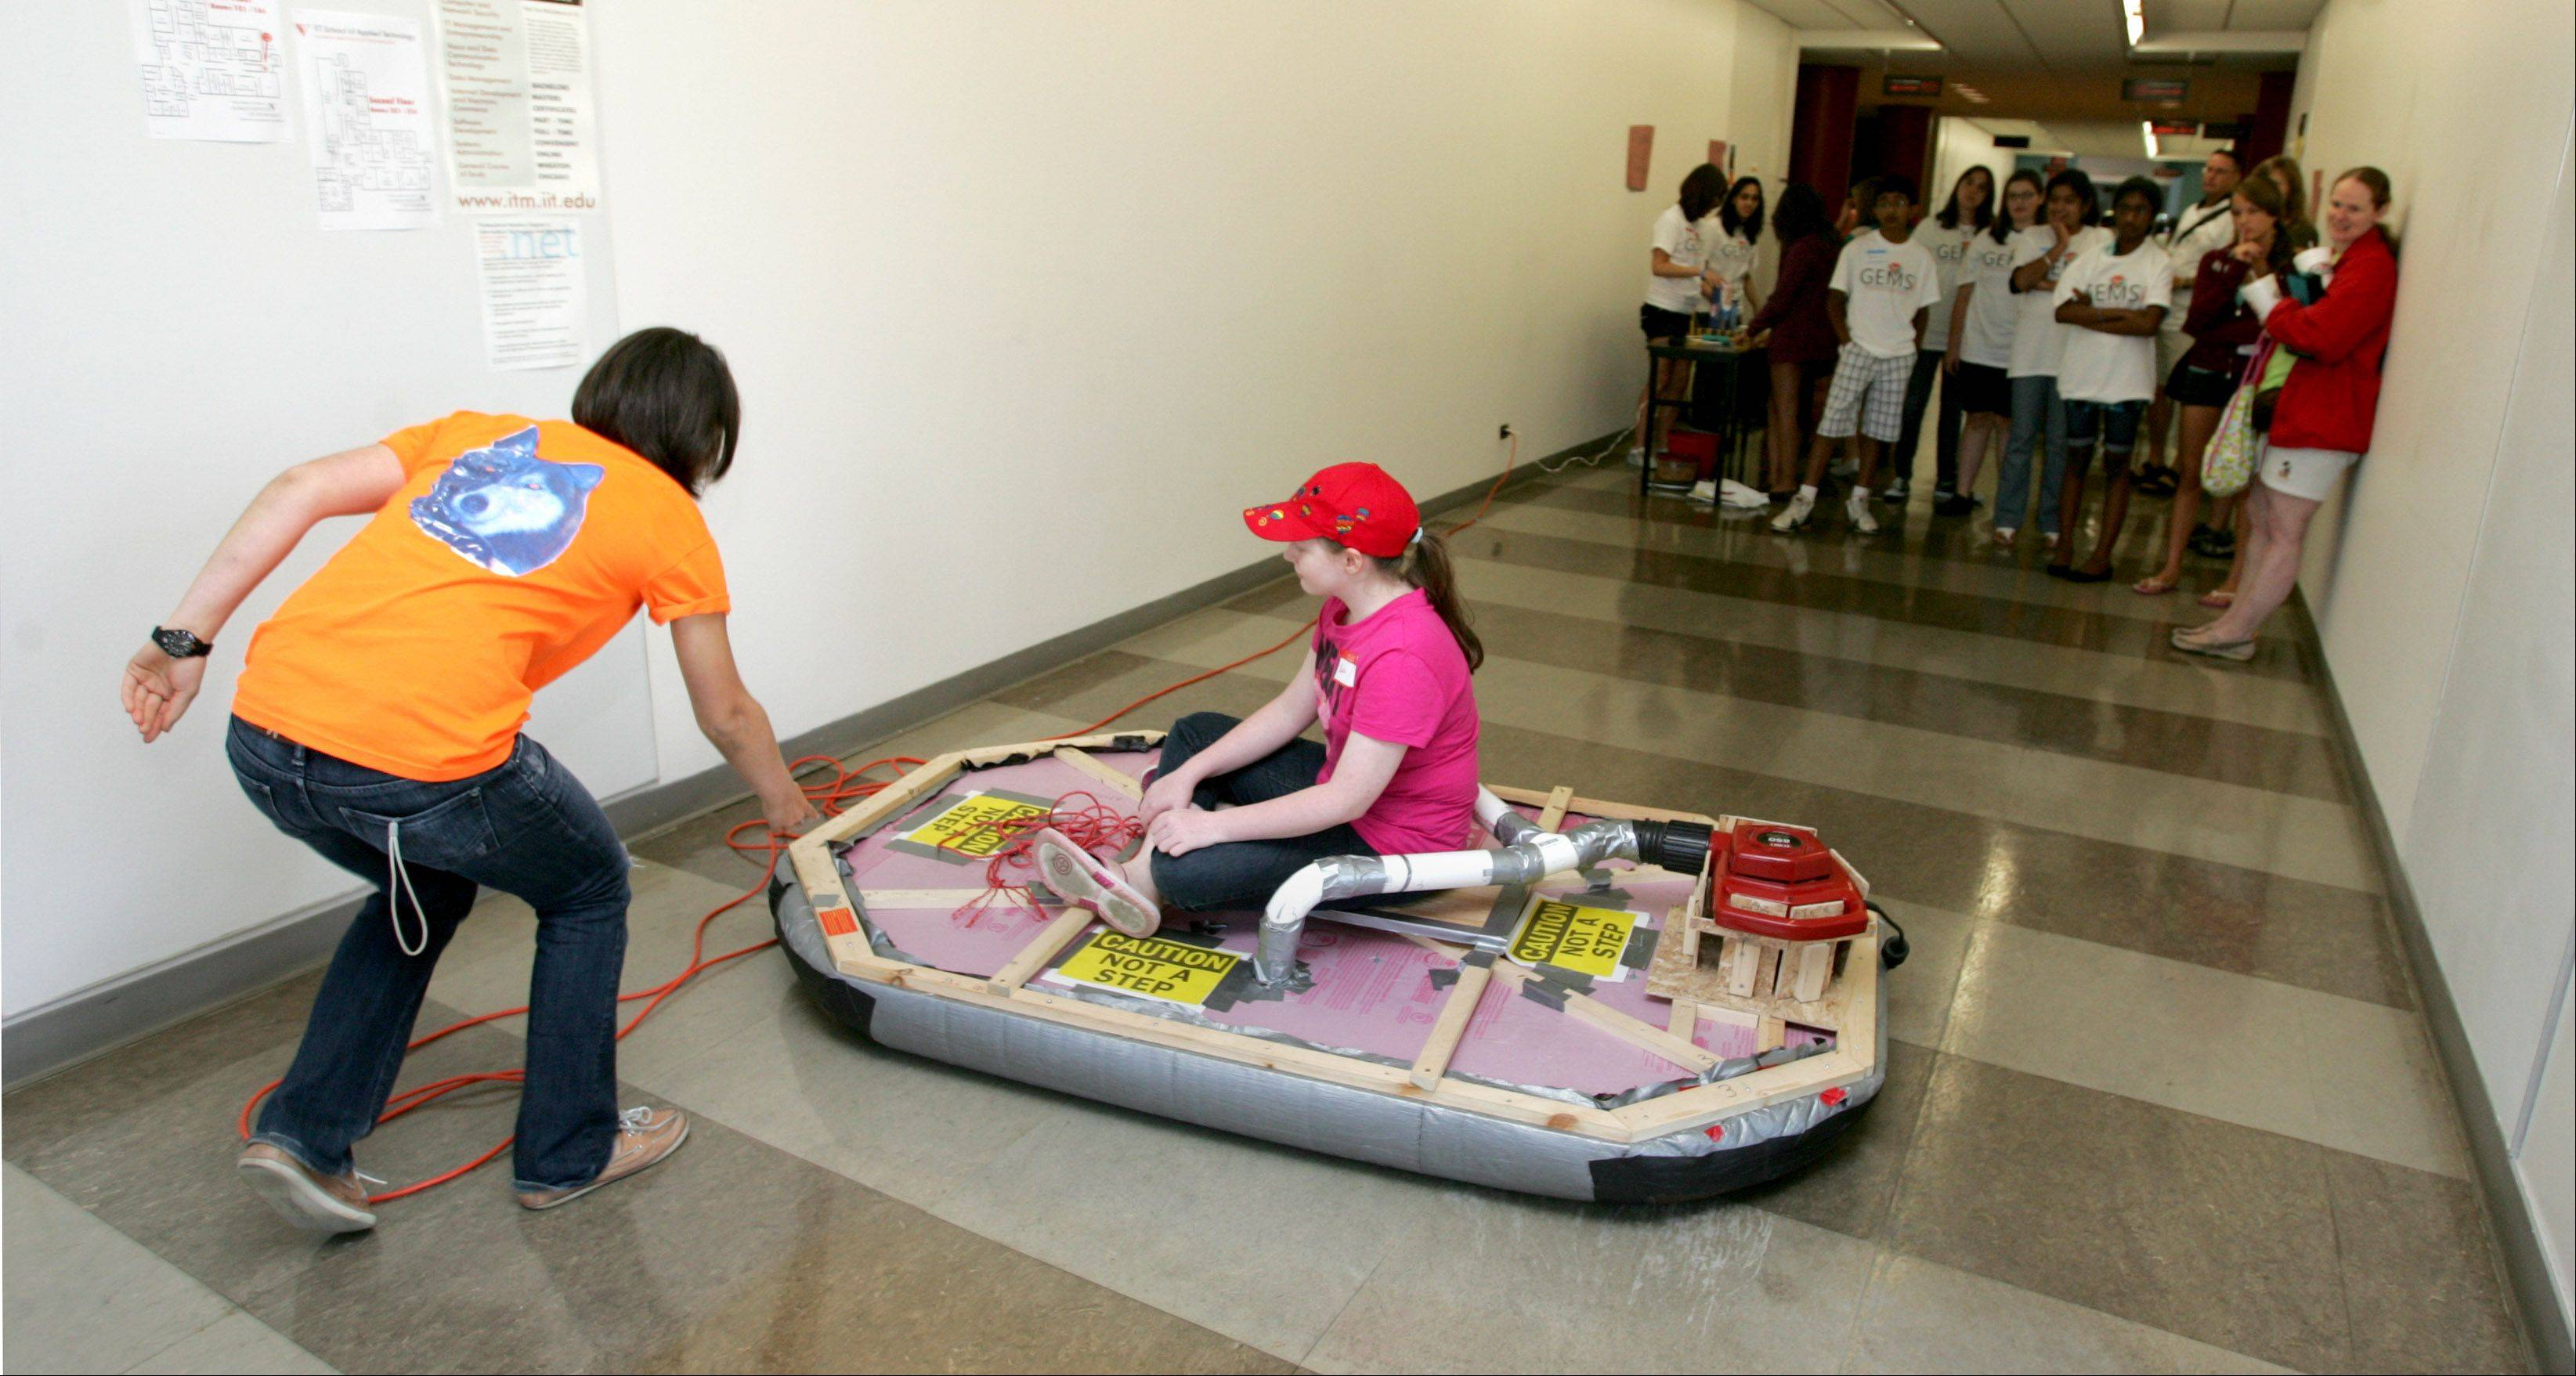 GEMS summer workshop participants watch as Katie Burke of Lisle gets a hovercraft ride from Cari Cesarotti of Naperville North High School during the second annual event for Girl Engineers, Mathematicians and Scientists in 2011. The fourth annual GEMS summer workshop is scheduled for 12:30 to 4:30 p.m. Wednesday, Aug. 7, at Naperville Central High School.